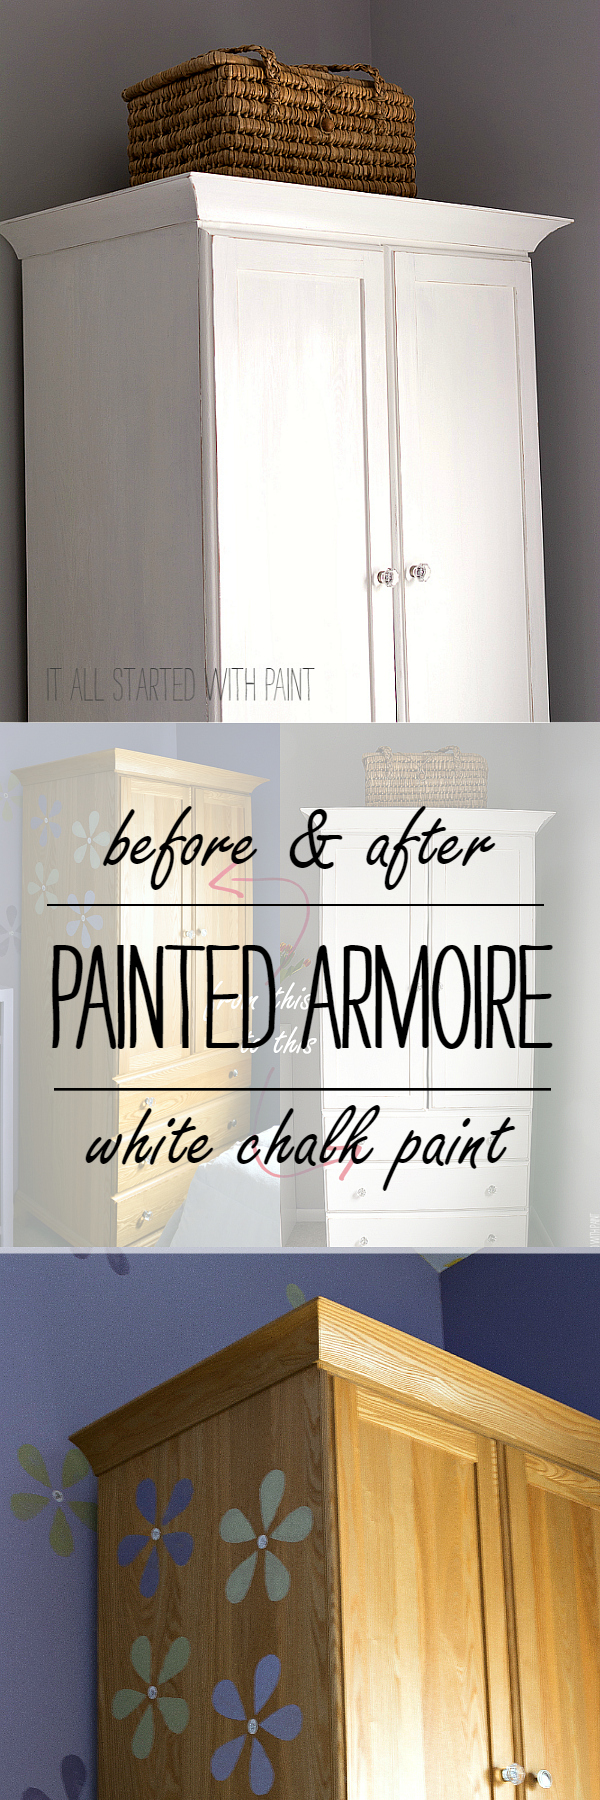 Chalk Painted Armoire: Annie Sloan Pure White Chalk Paint Used on Armoire - Painted and Distressed